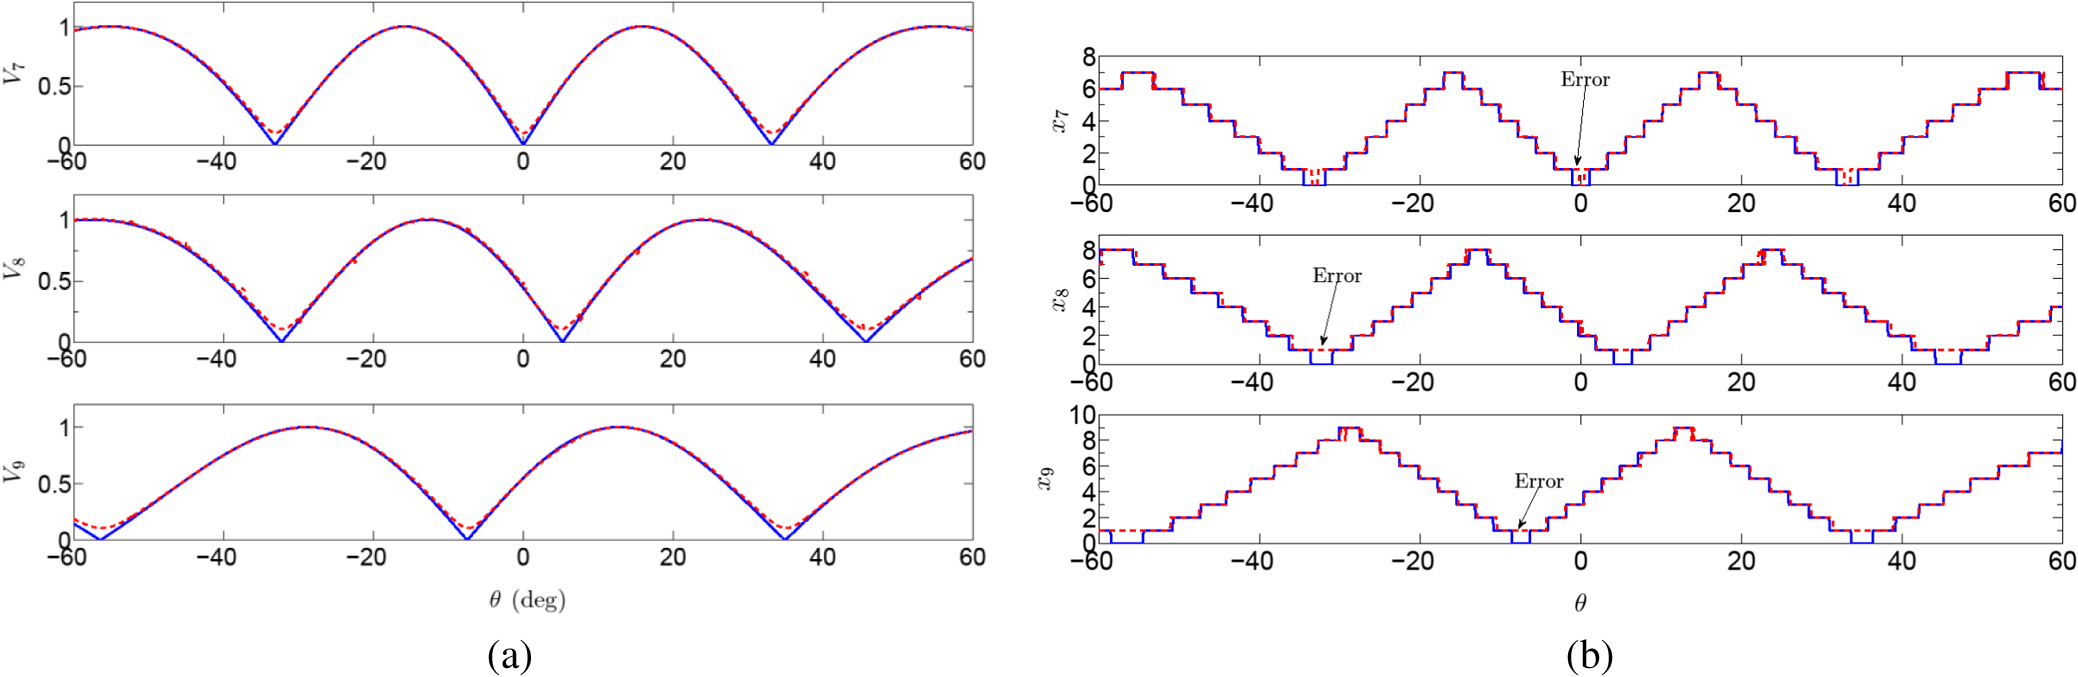 Wideband Direction Finding Using A Photonic Robust Symmetrical Envelope Detector Circuit Design Normalized Output B Residues Versus Doa Blue Solid Line Represents The Theoretical Values And Red Dashed